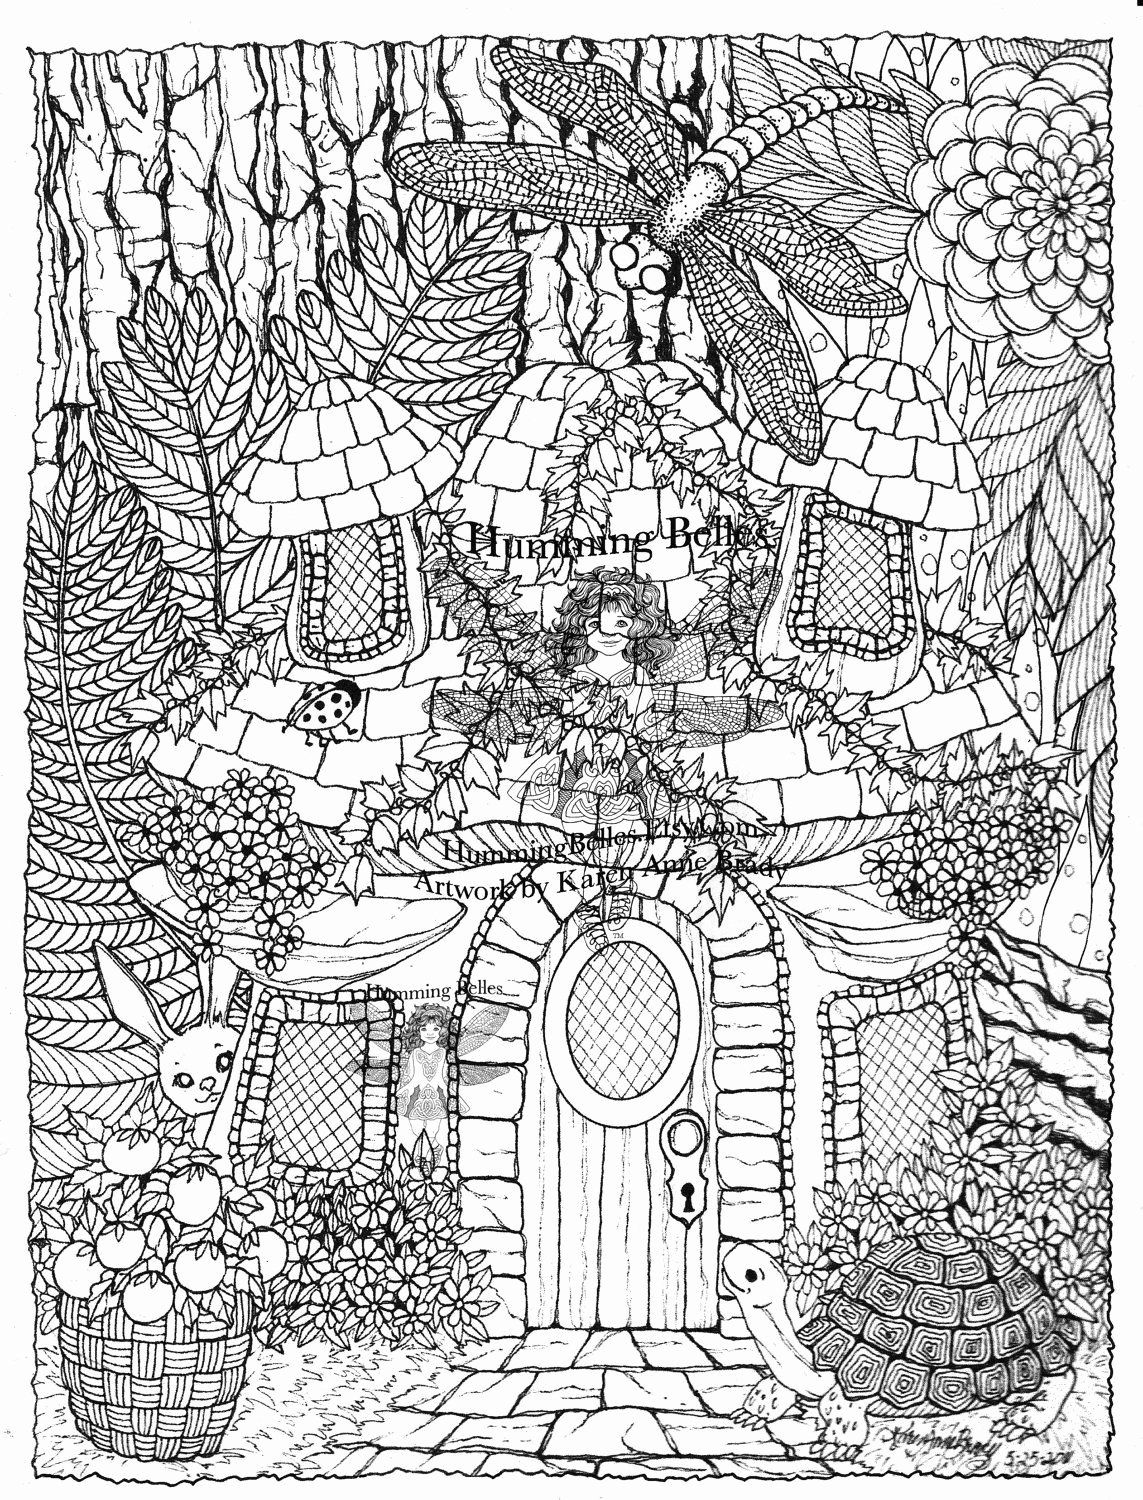 Vegetable Garden Coloring Pages Printable Beautiful Printable Fairy Garden Coloring Pages Detailed Coloring Pages Turtle Coloring Pages Animal Coloring Pages